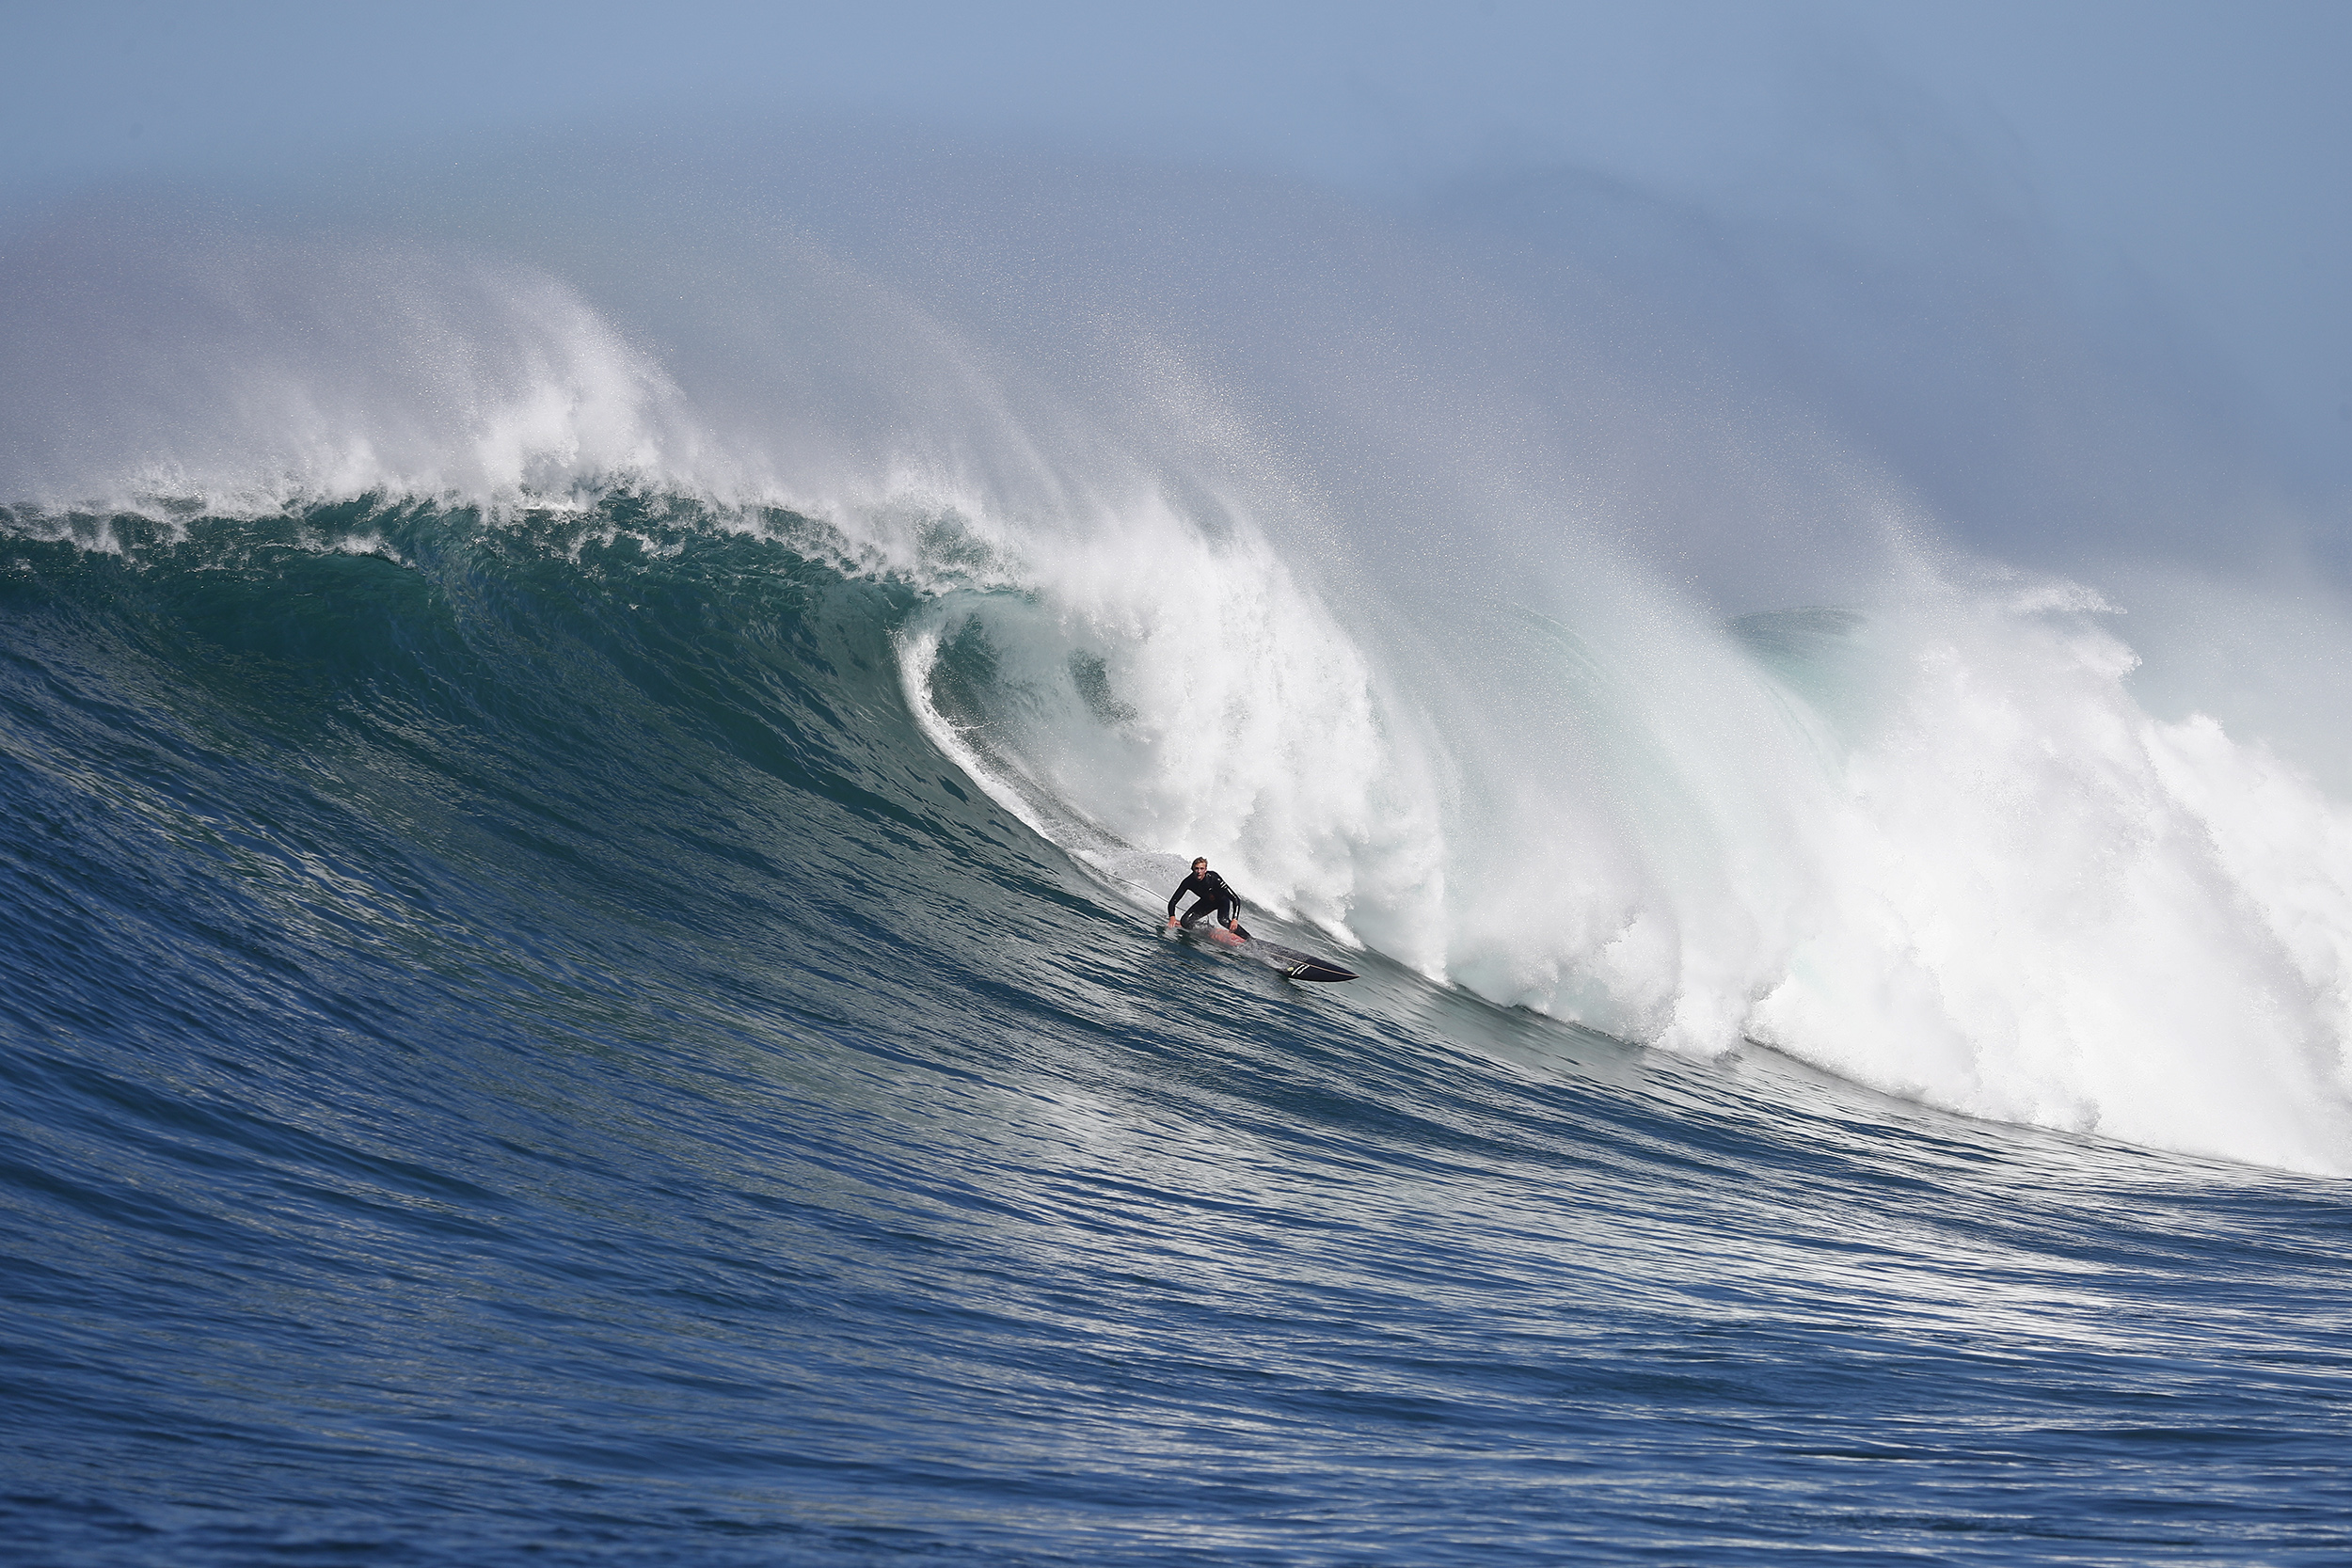 BigWave,Surfer,Watersafty,Water,Shark,REBELSessions, Odd Perrson ,Dungeons,REBEL Sessions, Dungeons, BigWaveSurfing, Matt Bromley, Odd Perssons,Tommy Kruger,Mike Schlebach,